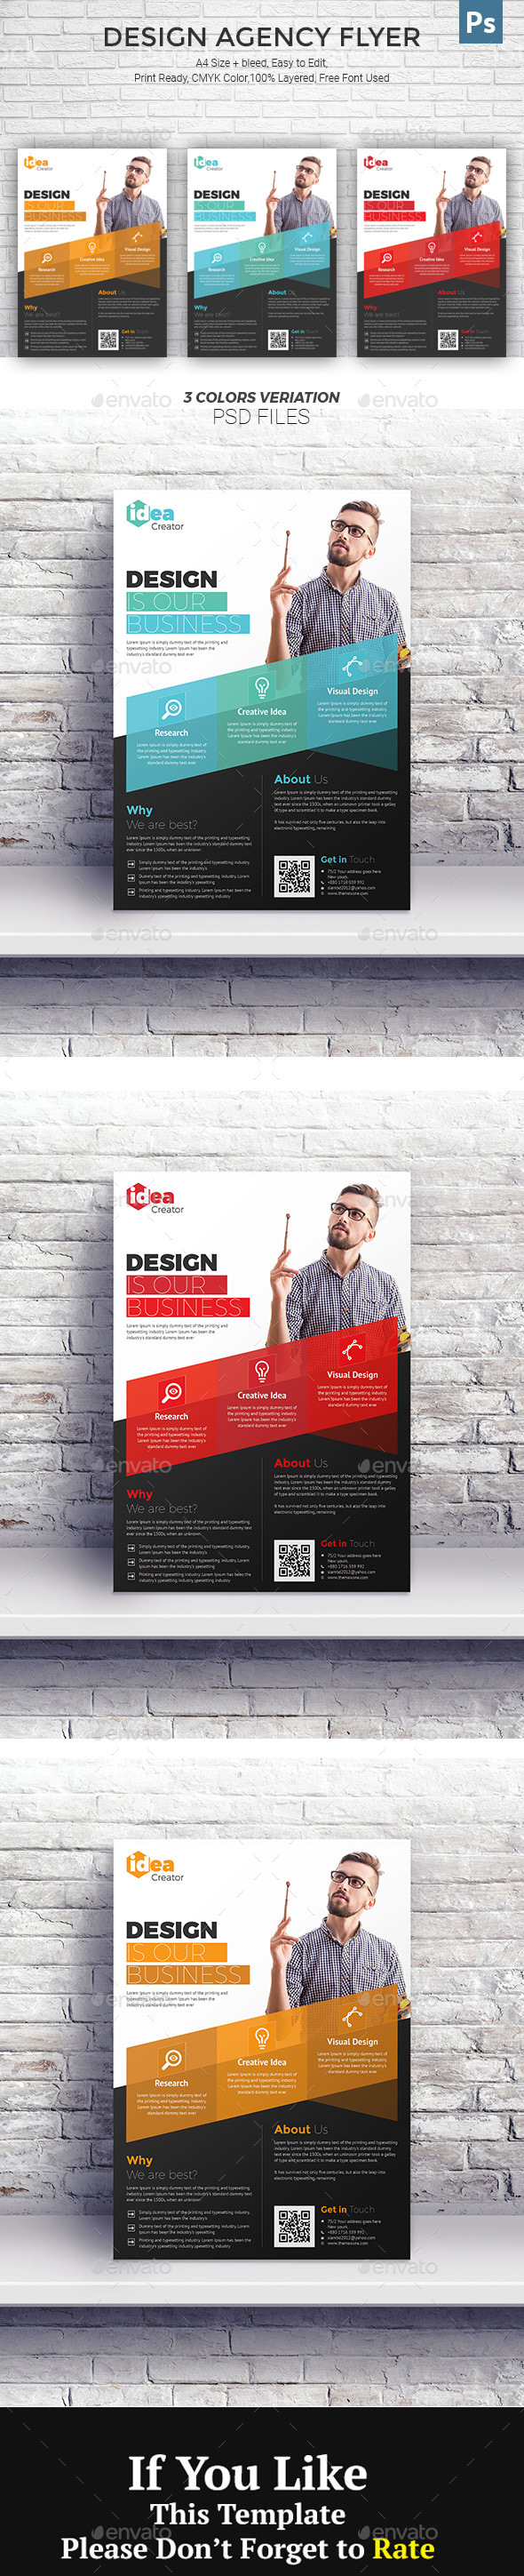 GraphicRiver Design Agency Flyer 20989652